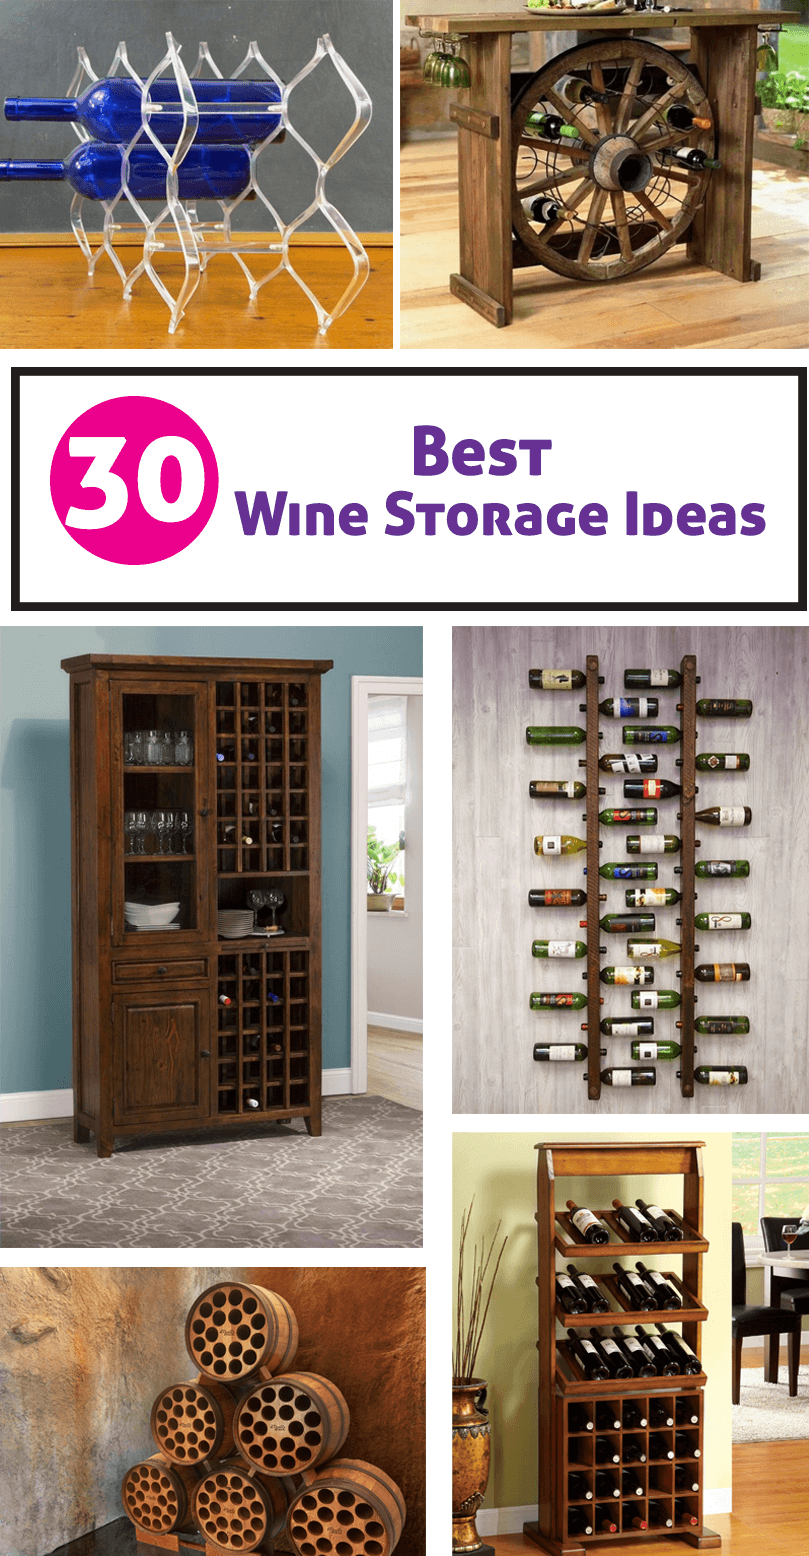 Best Wine Storage Ideas